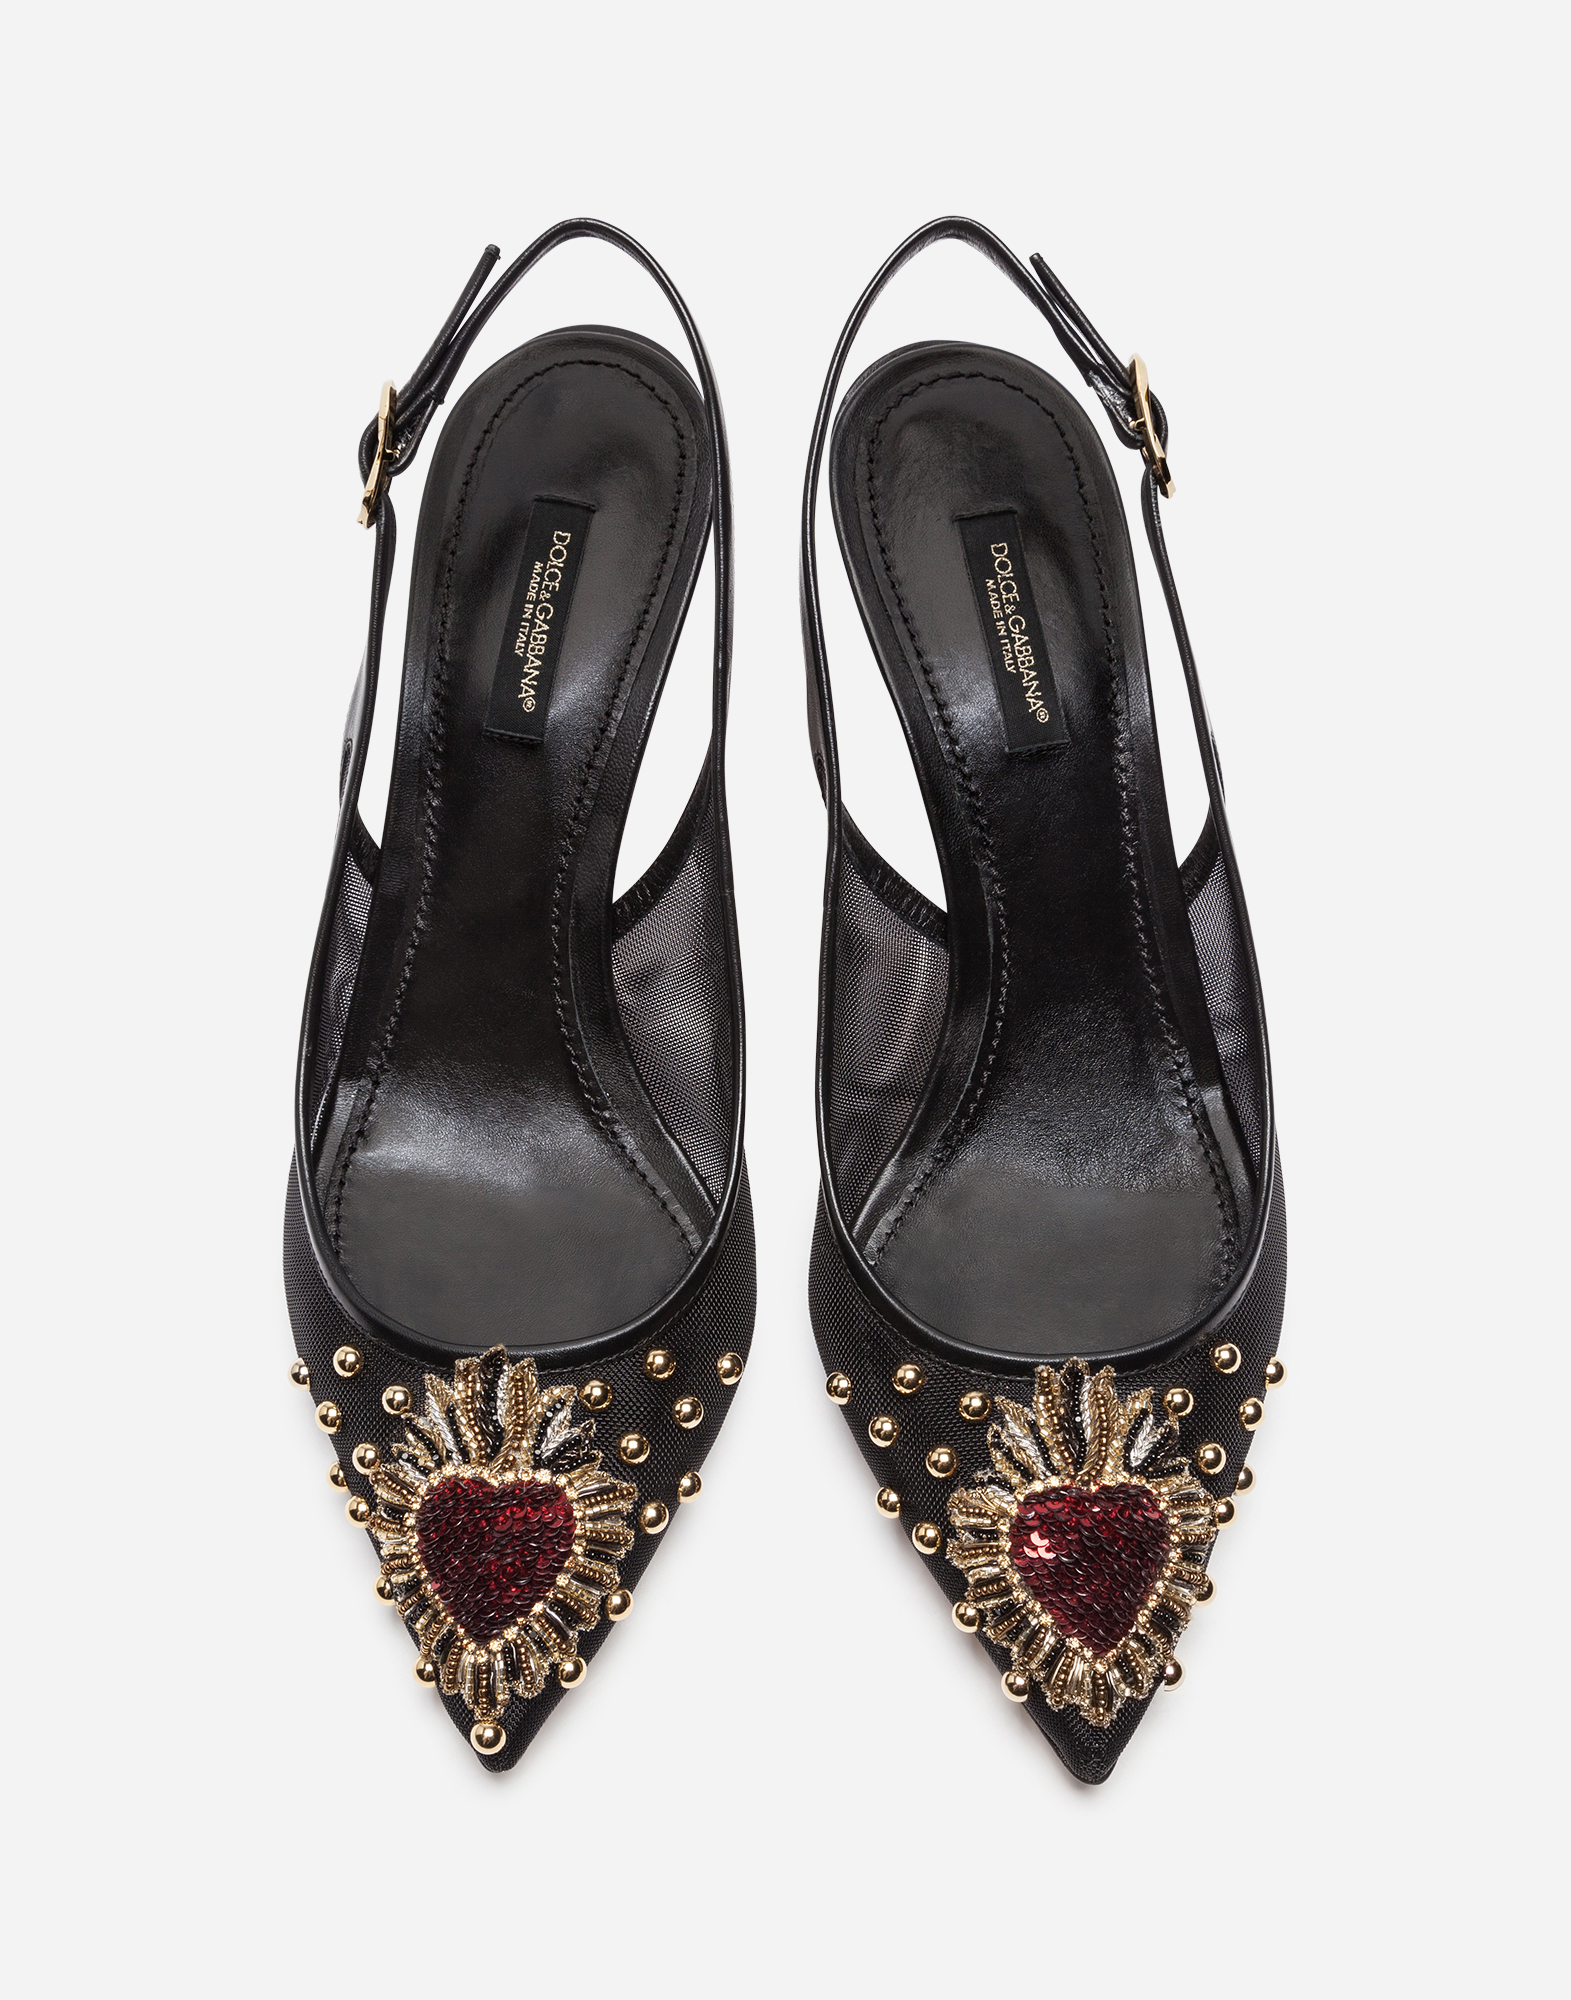 MESH SLINGBACK WITH EMBROIDERY AND APPLIQUÉS